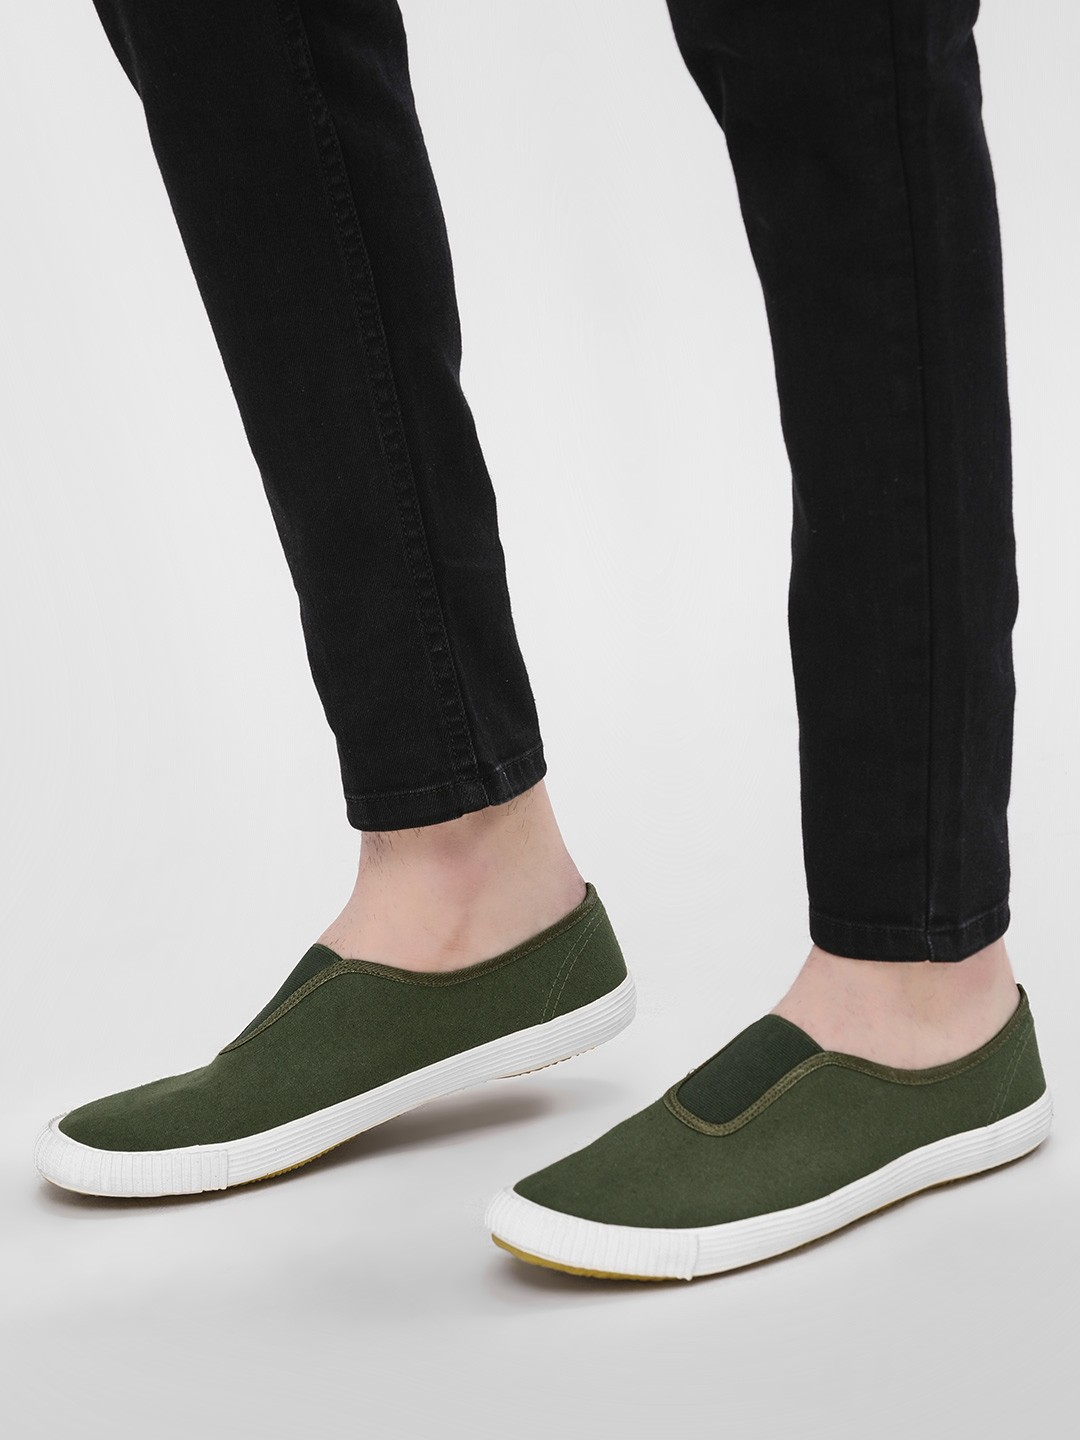 KOOVS Olive Slip-On Gusset Plimsoll Shoes 1